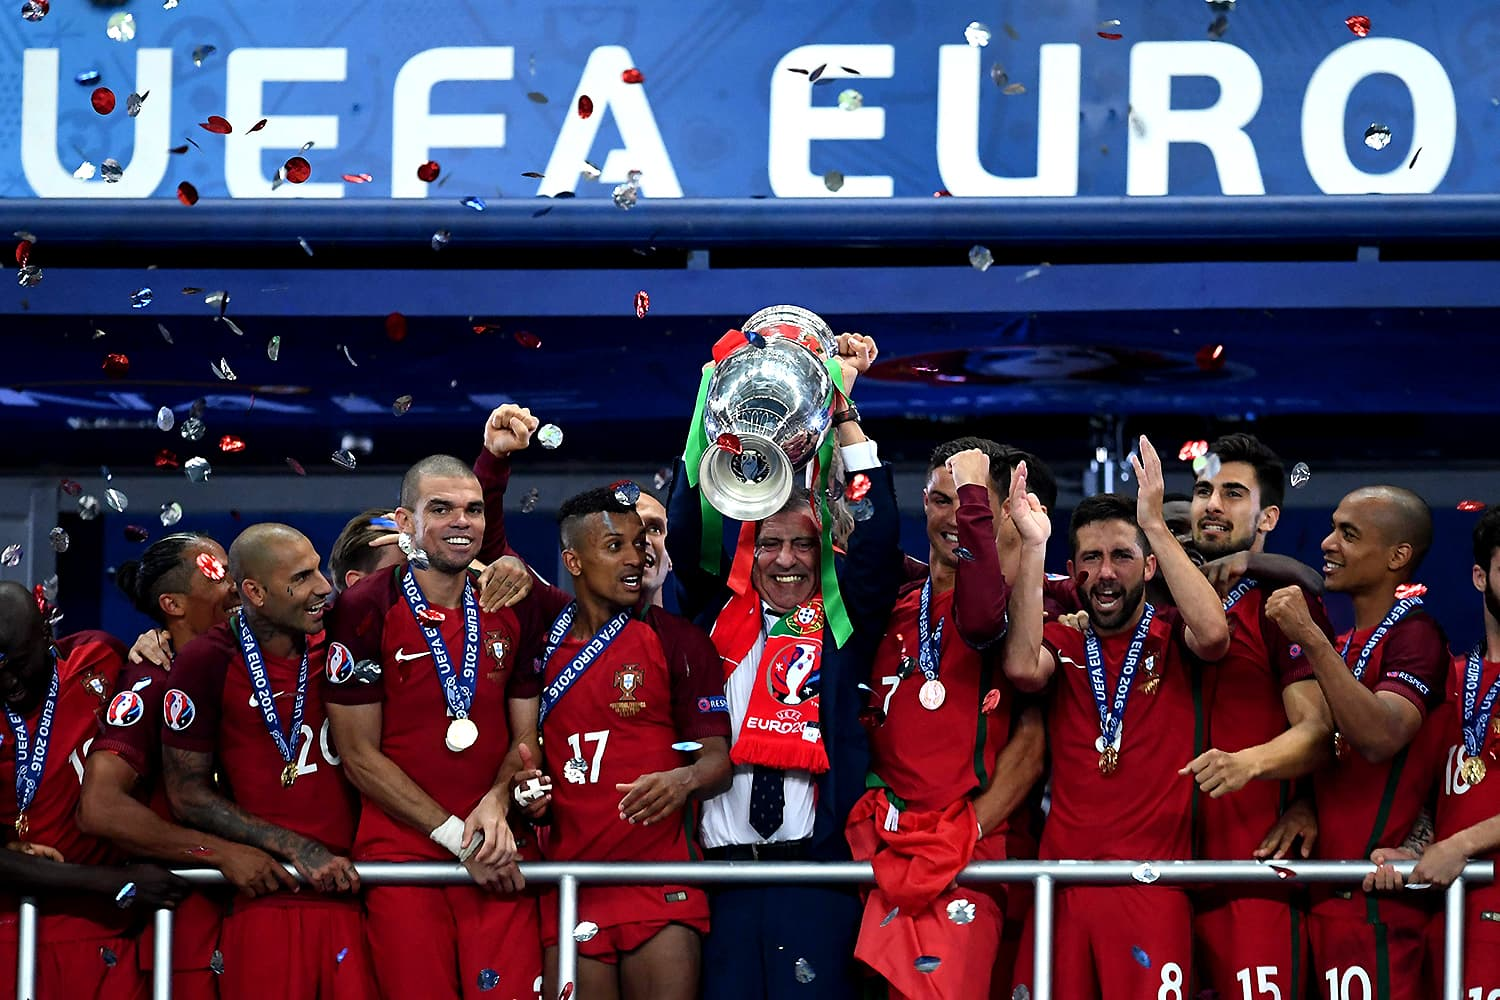 Portugal players and coach celebrate with the European Championship trophy. — AFP